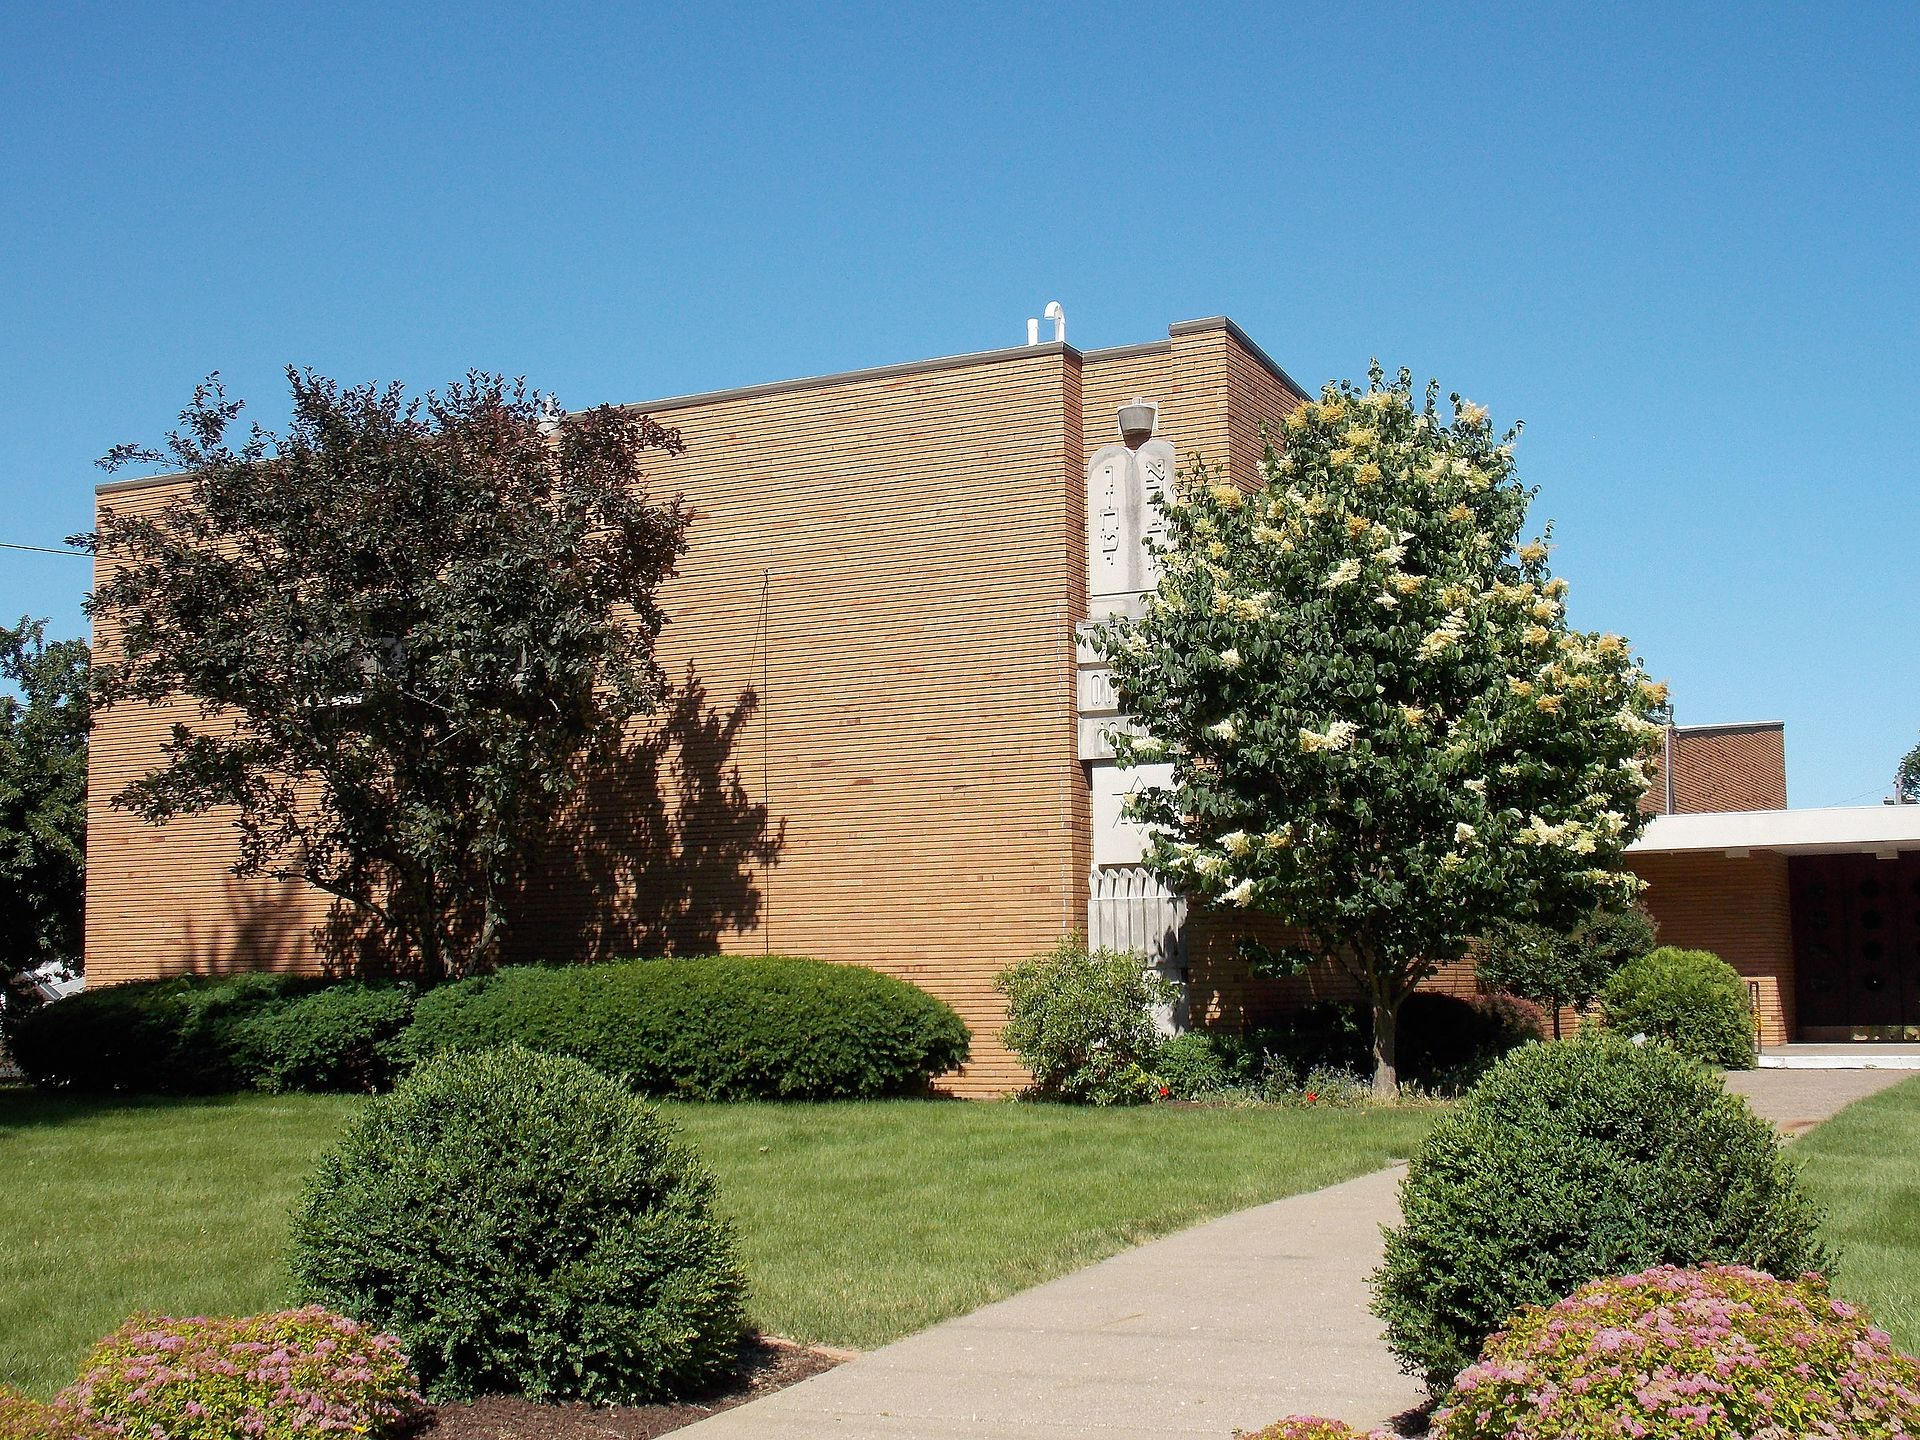 Temple Emanuel was founded in 1861, making it the oldest Jewish congregation in Iowa.